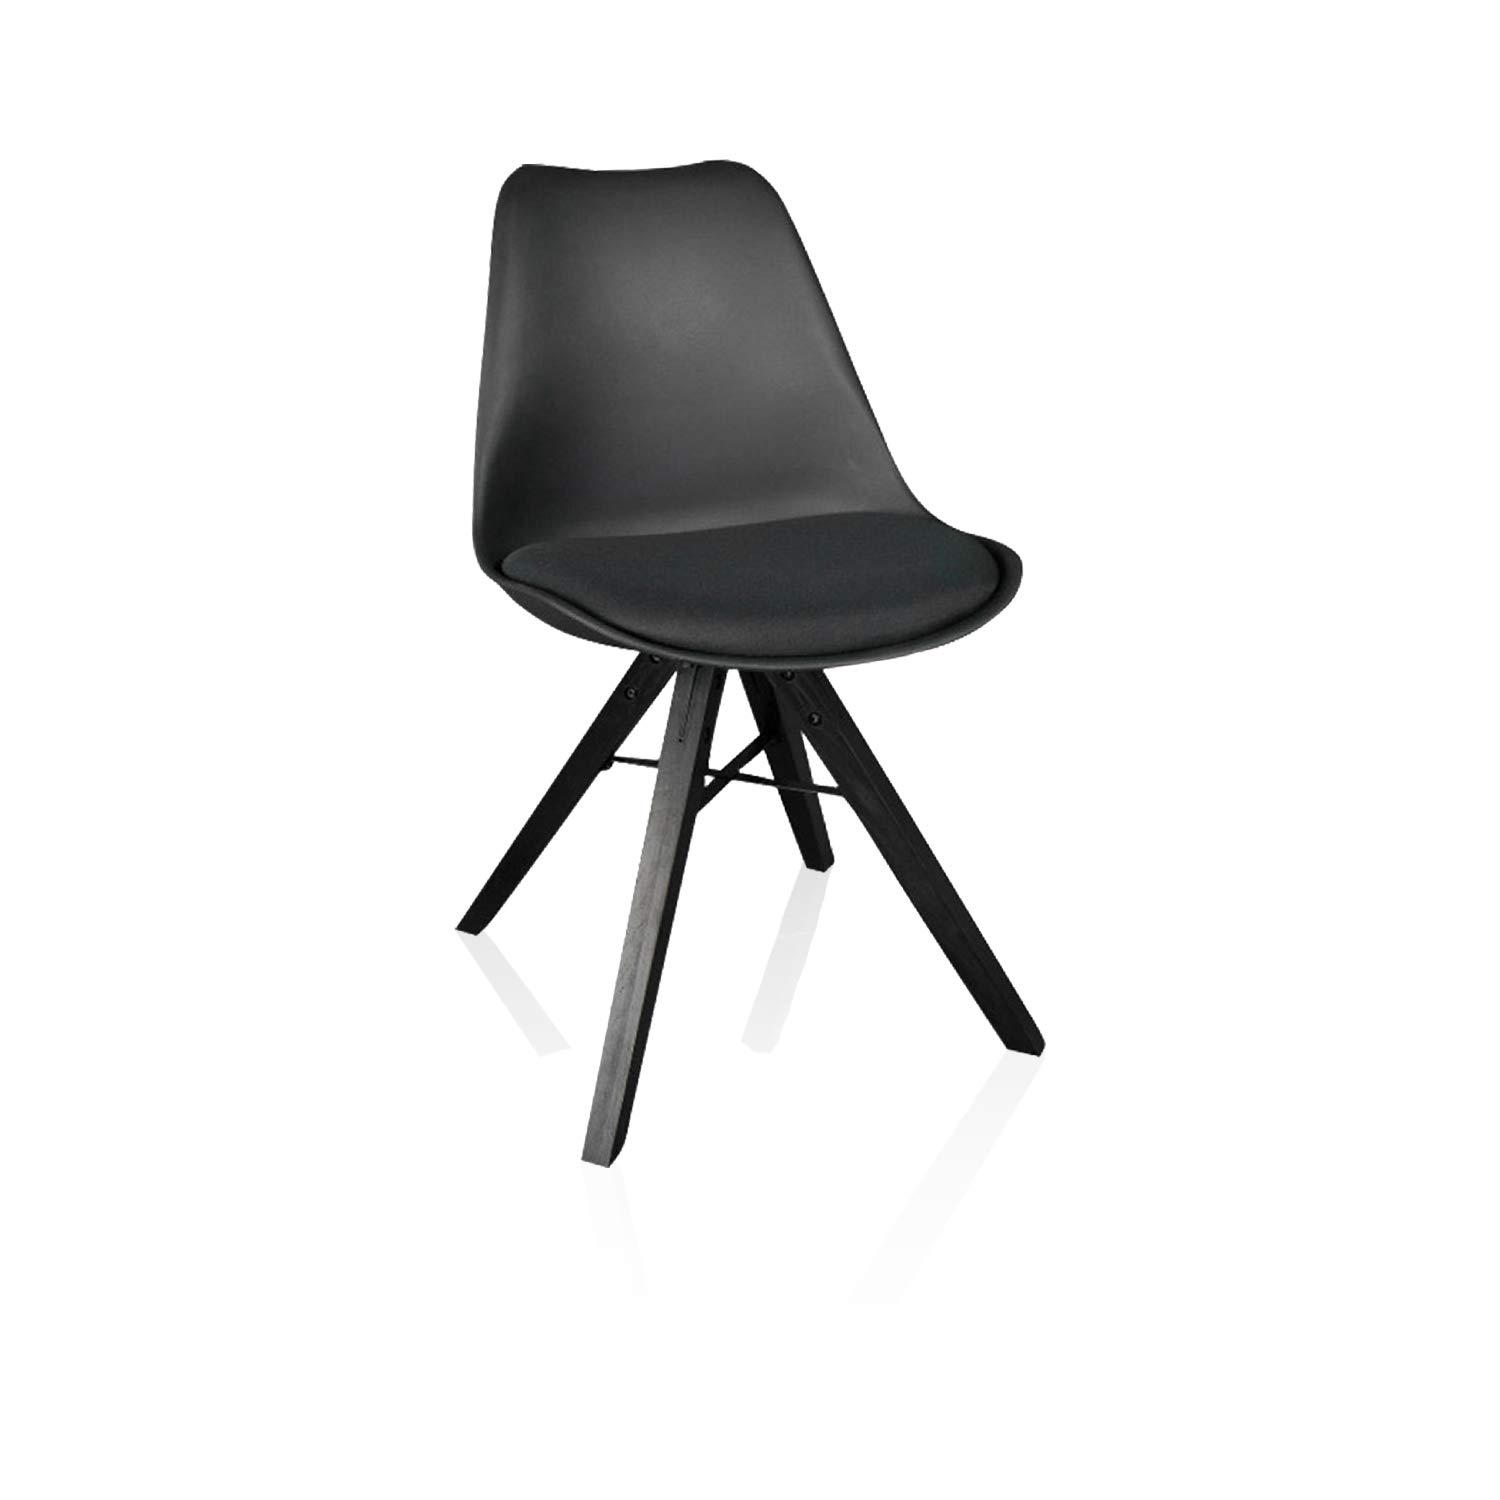 Heyesk Dining Room Chair Mid Century Modern Chairs,Upholstered Seat(Black, 1)